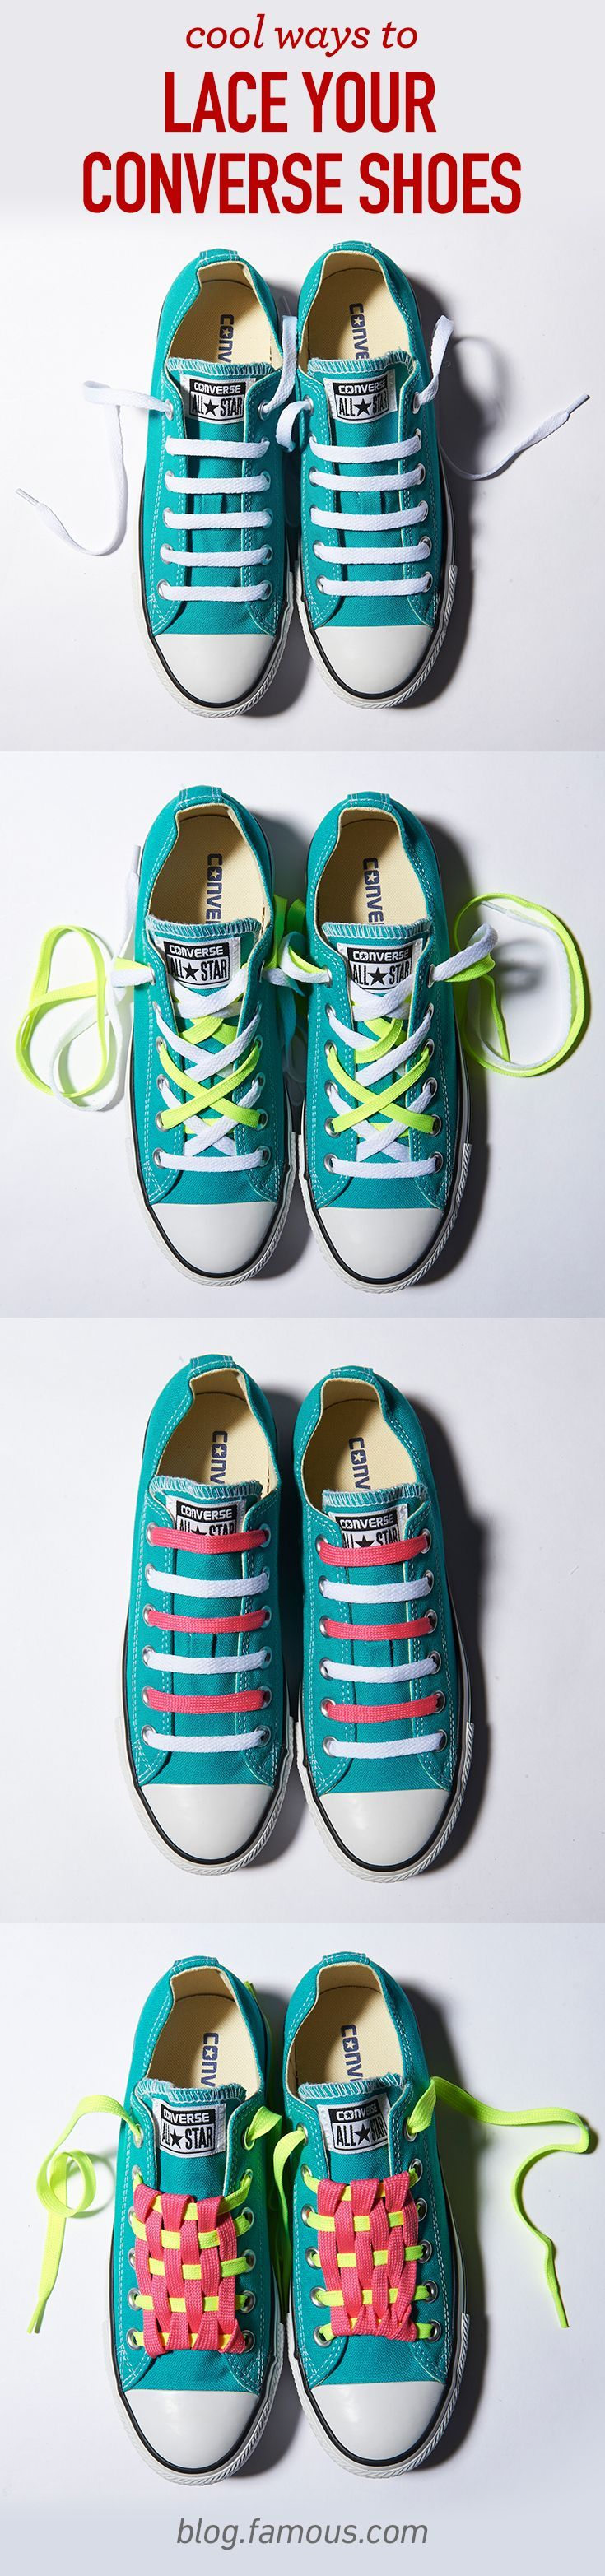 different is better than boring #converse  Clever @thedailybasics ♥♥♥